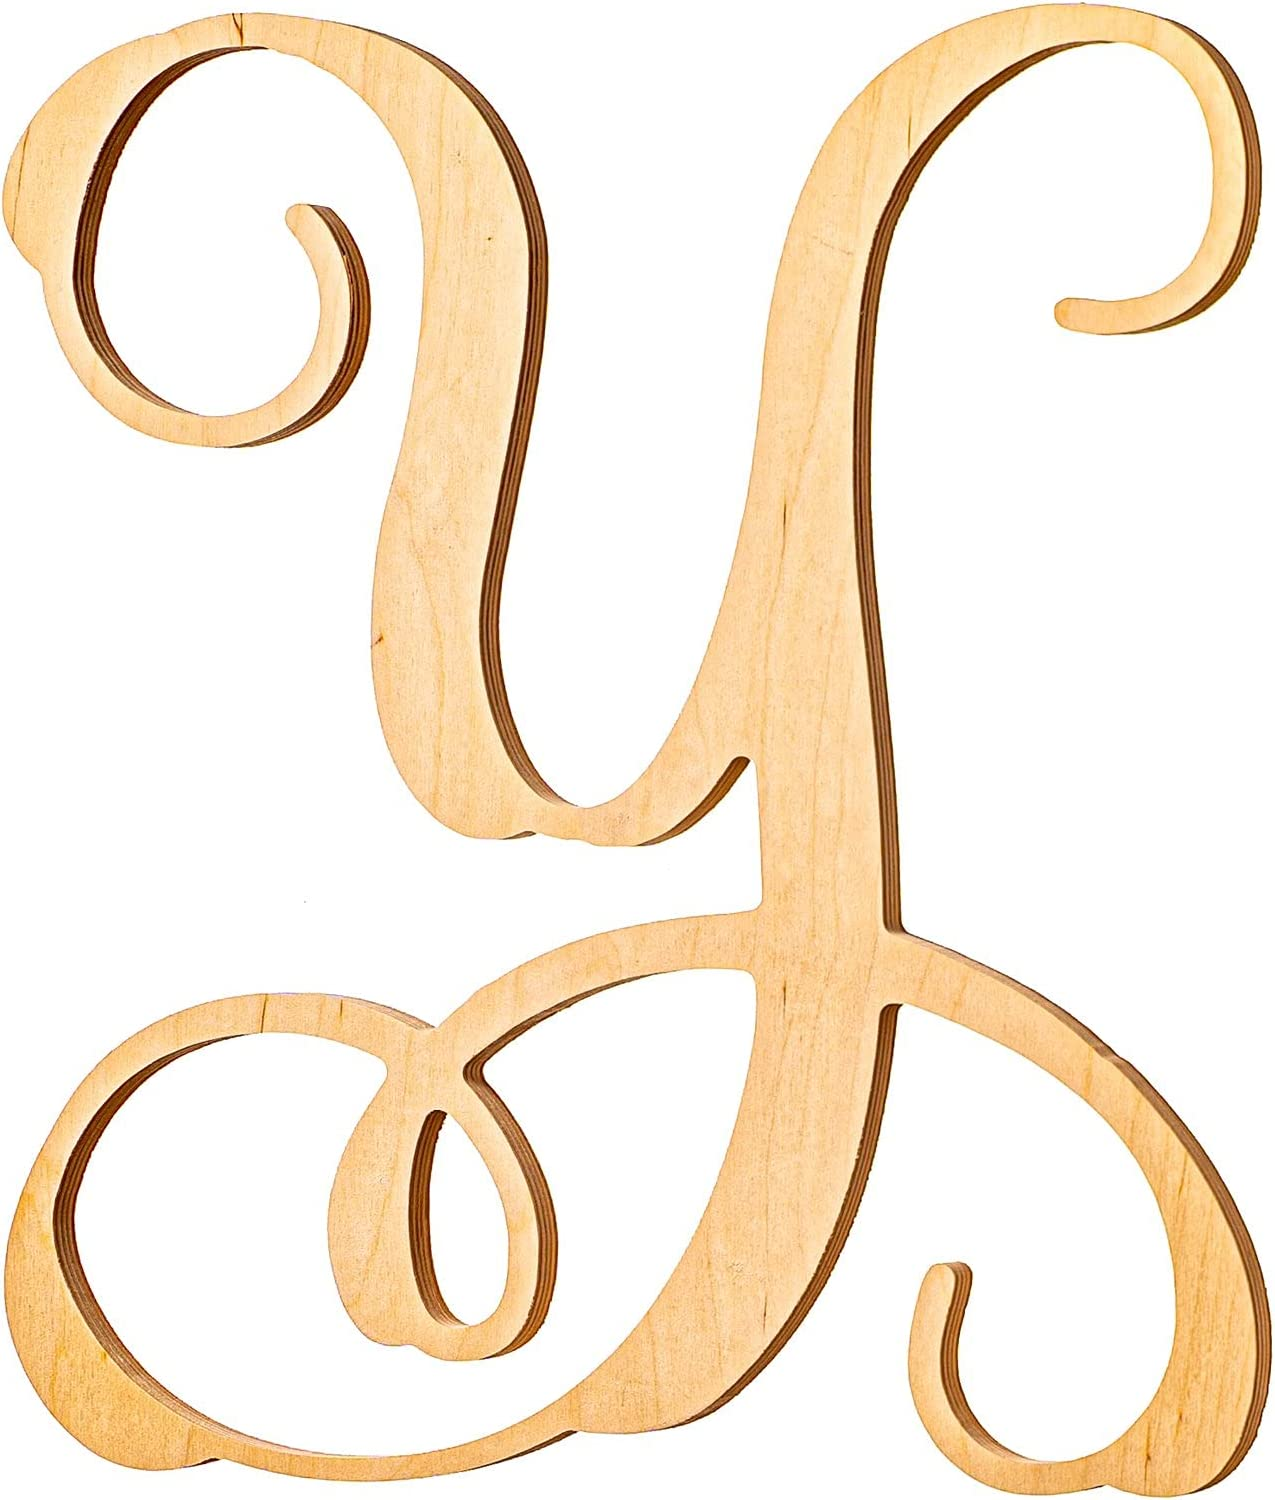 UNFINISHEDWOODCO Wooden Letter Monogram Room Décor - 13 Inches Tall - Unfinished Vine Cursive Wood Initials for Bedroom, Wall Decor Above Baby Crib, Nursery or Teen Room - Letter Y